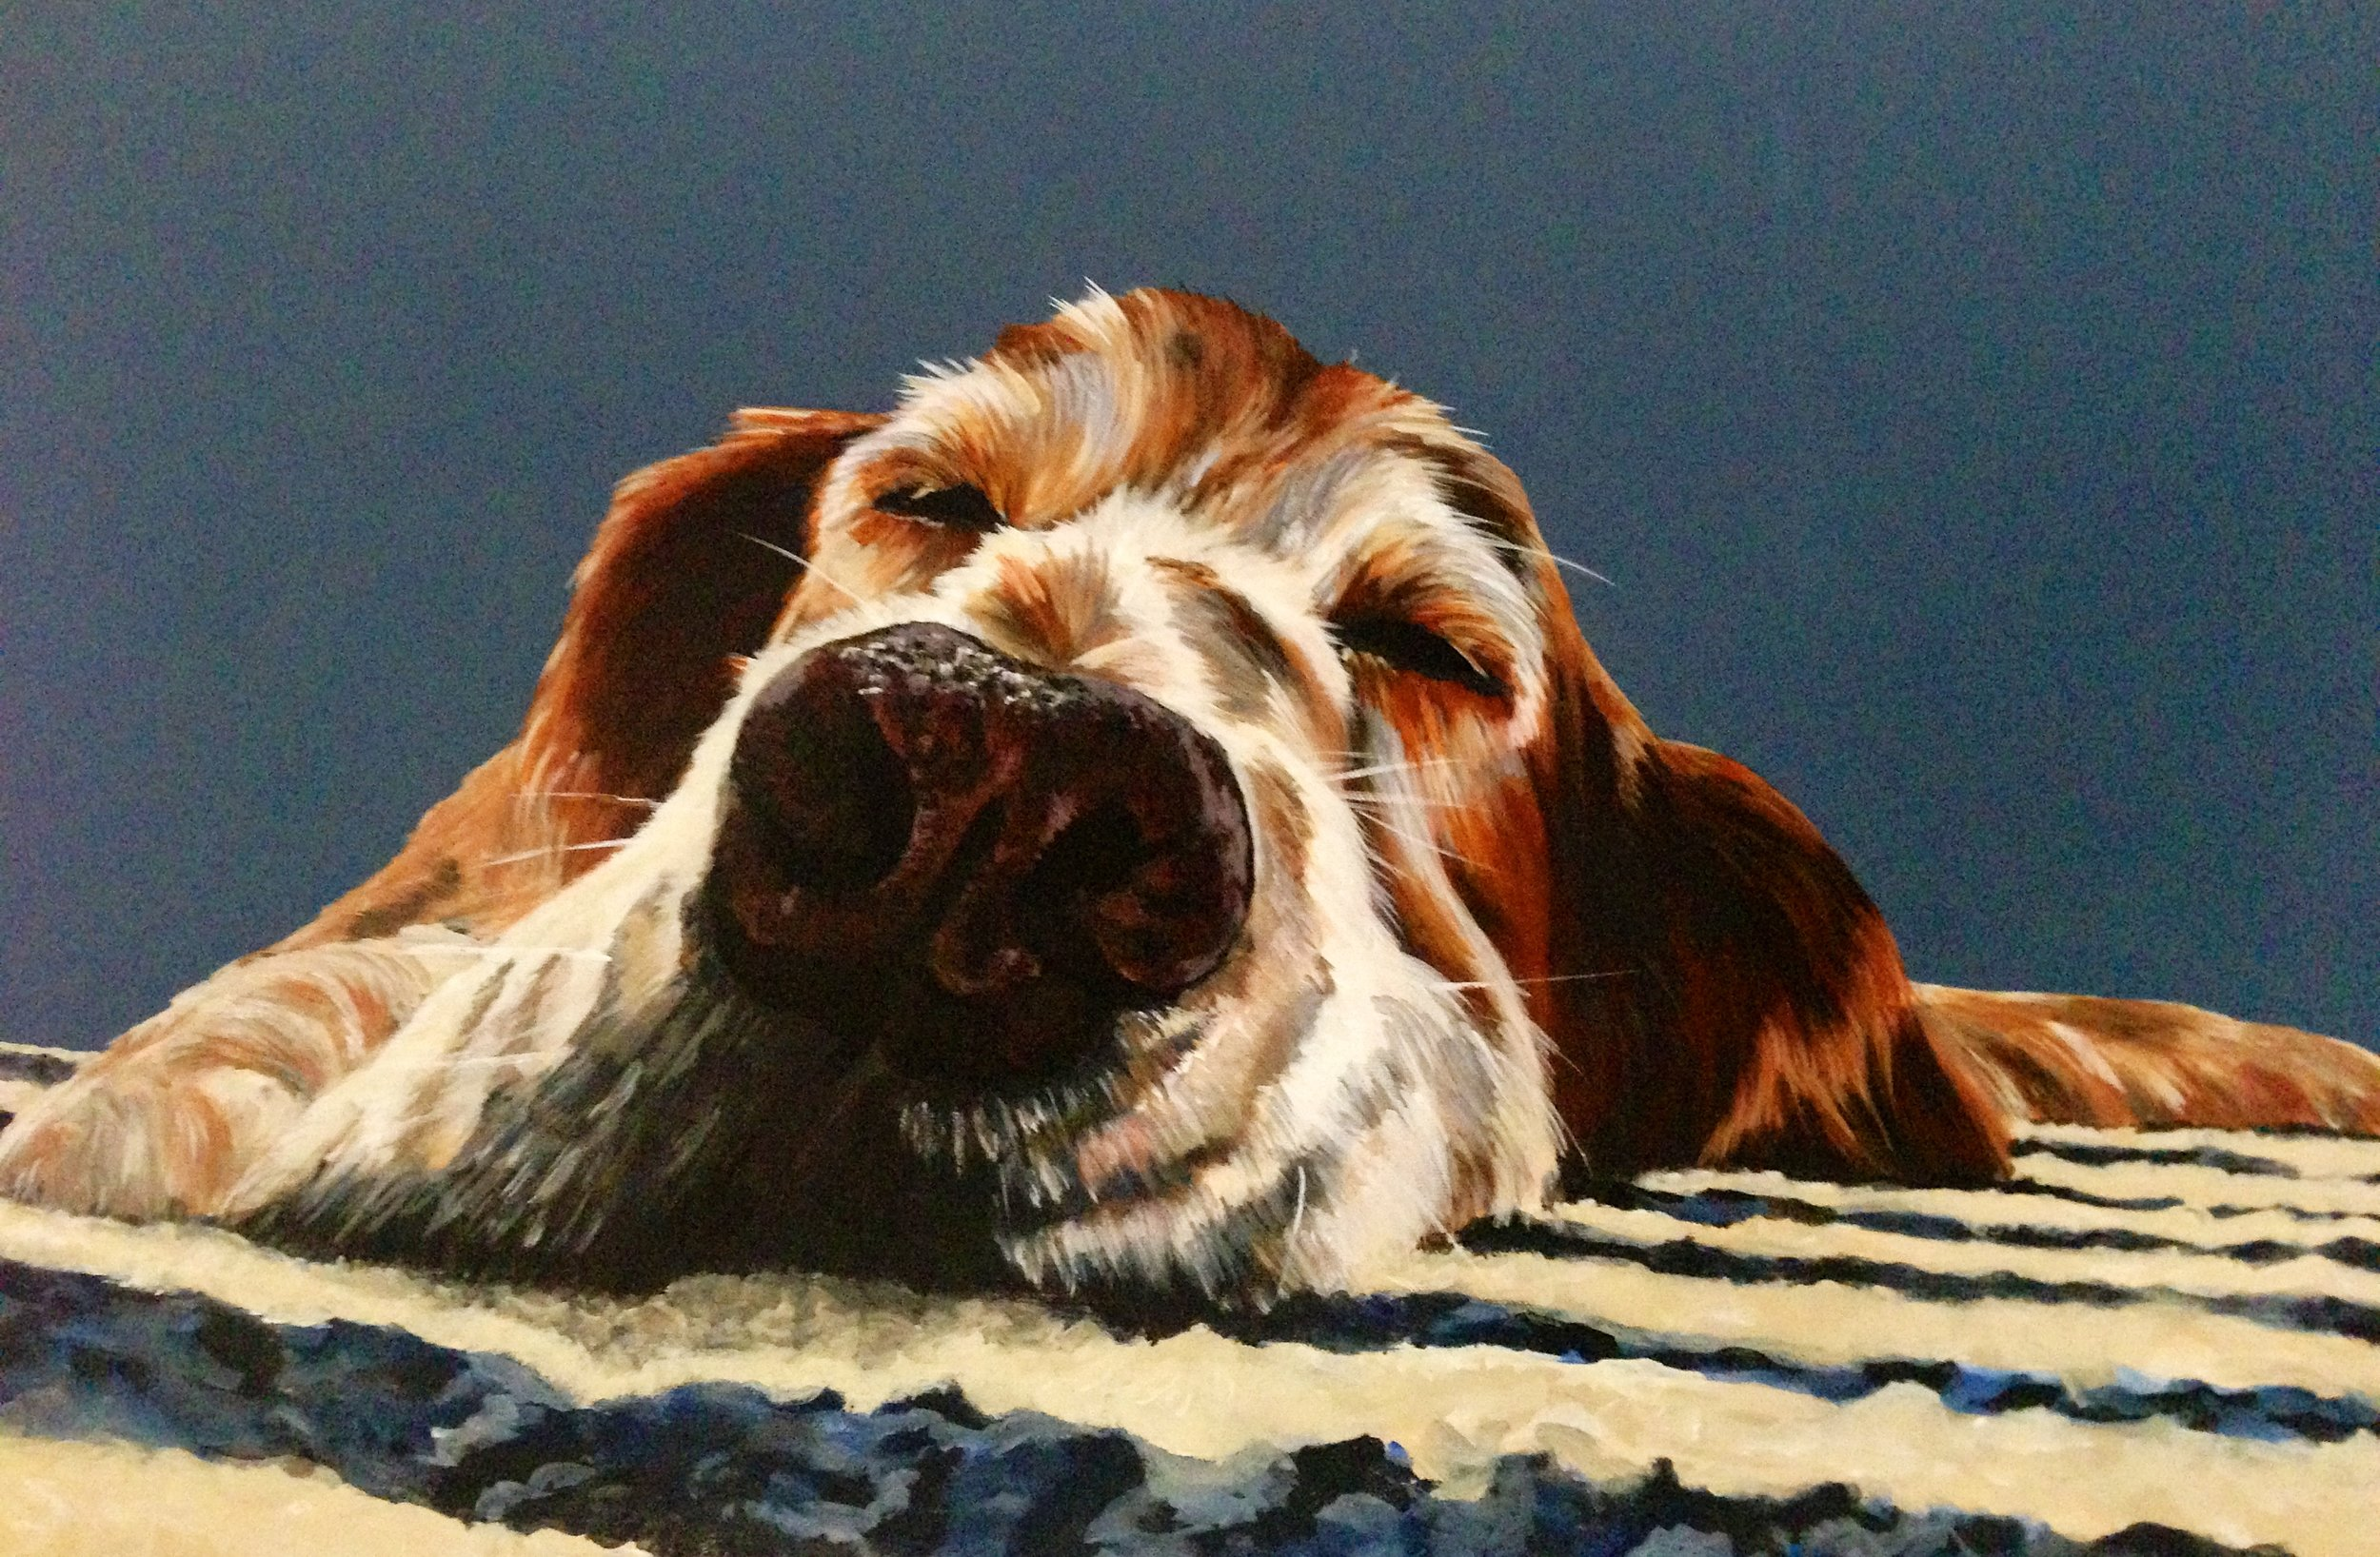 Dana - Acrylic on canvas - 18 x 36 - My old dog Dana. I did this painting for myself to remember her by.